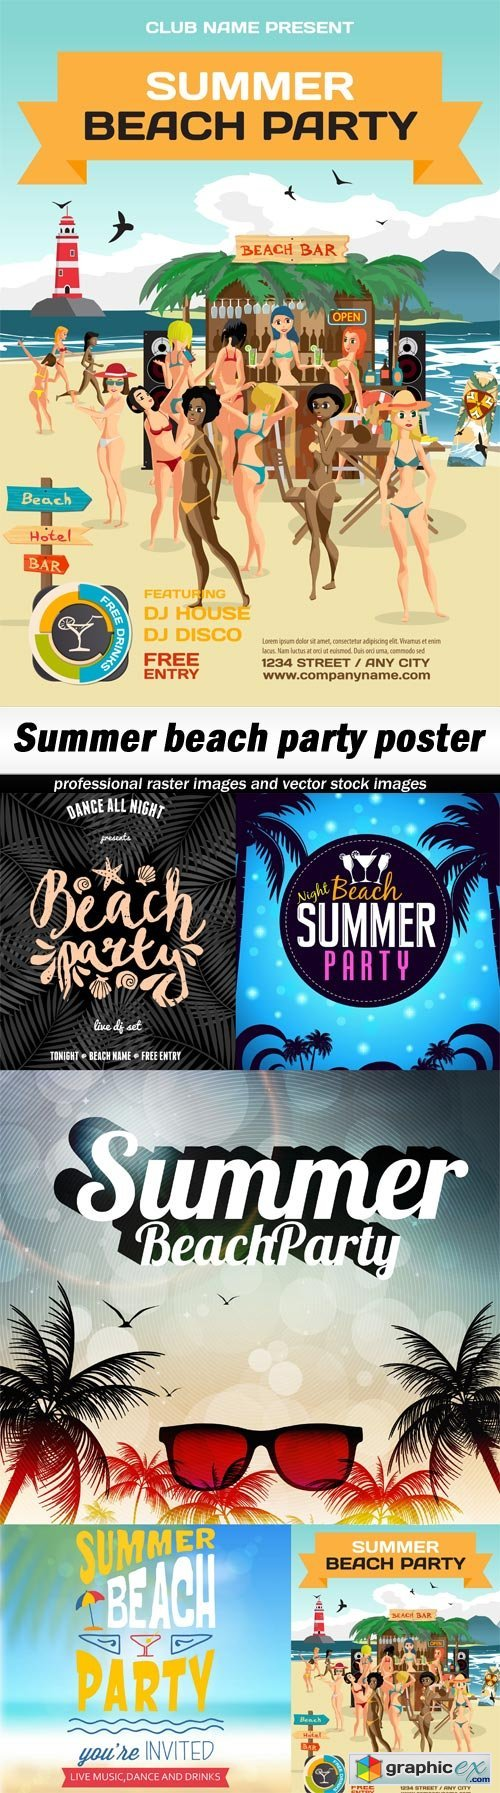 Summer beach party poster - 5 EPS